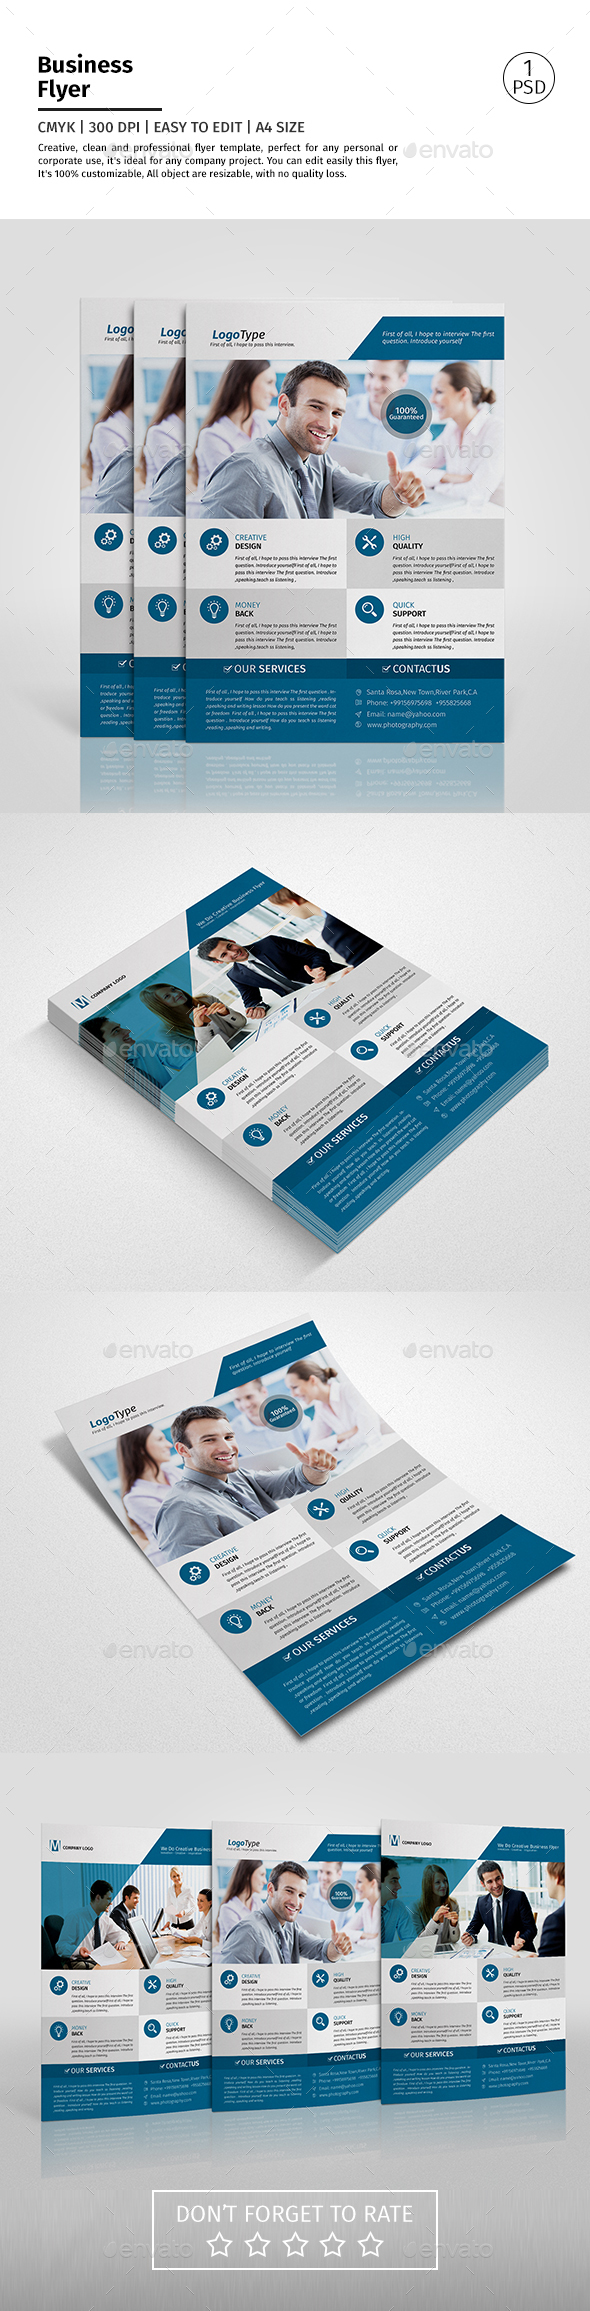 A4 Corporate Business Flyer Template Vol 01